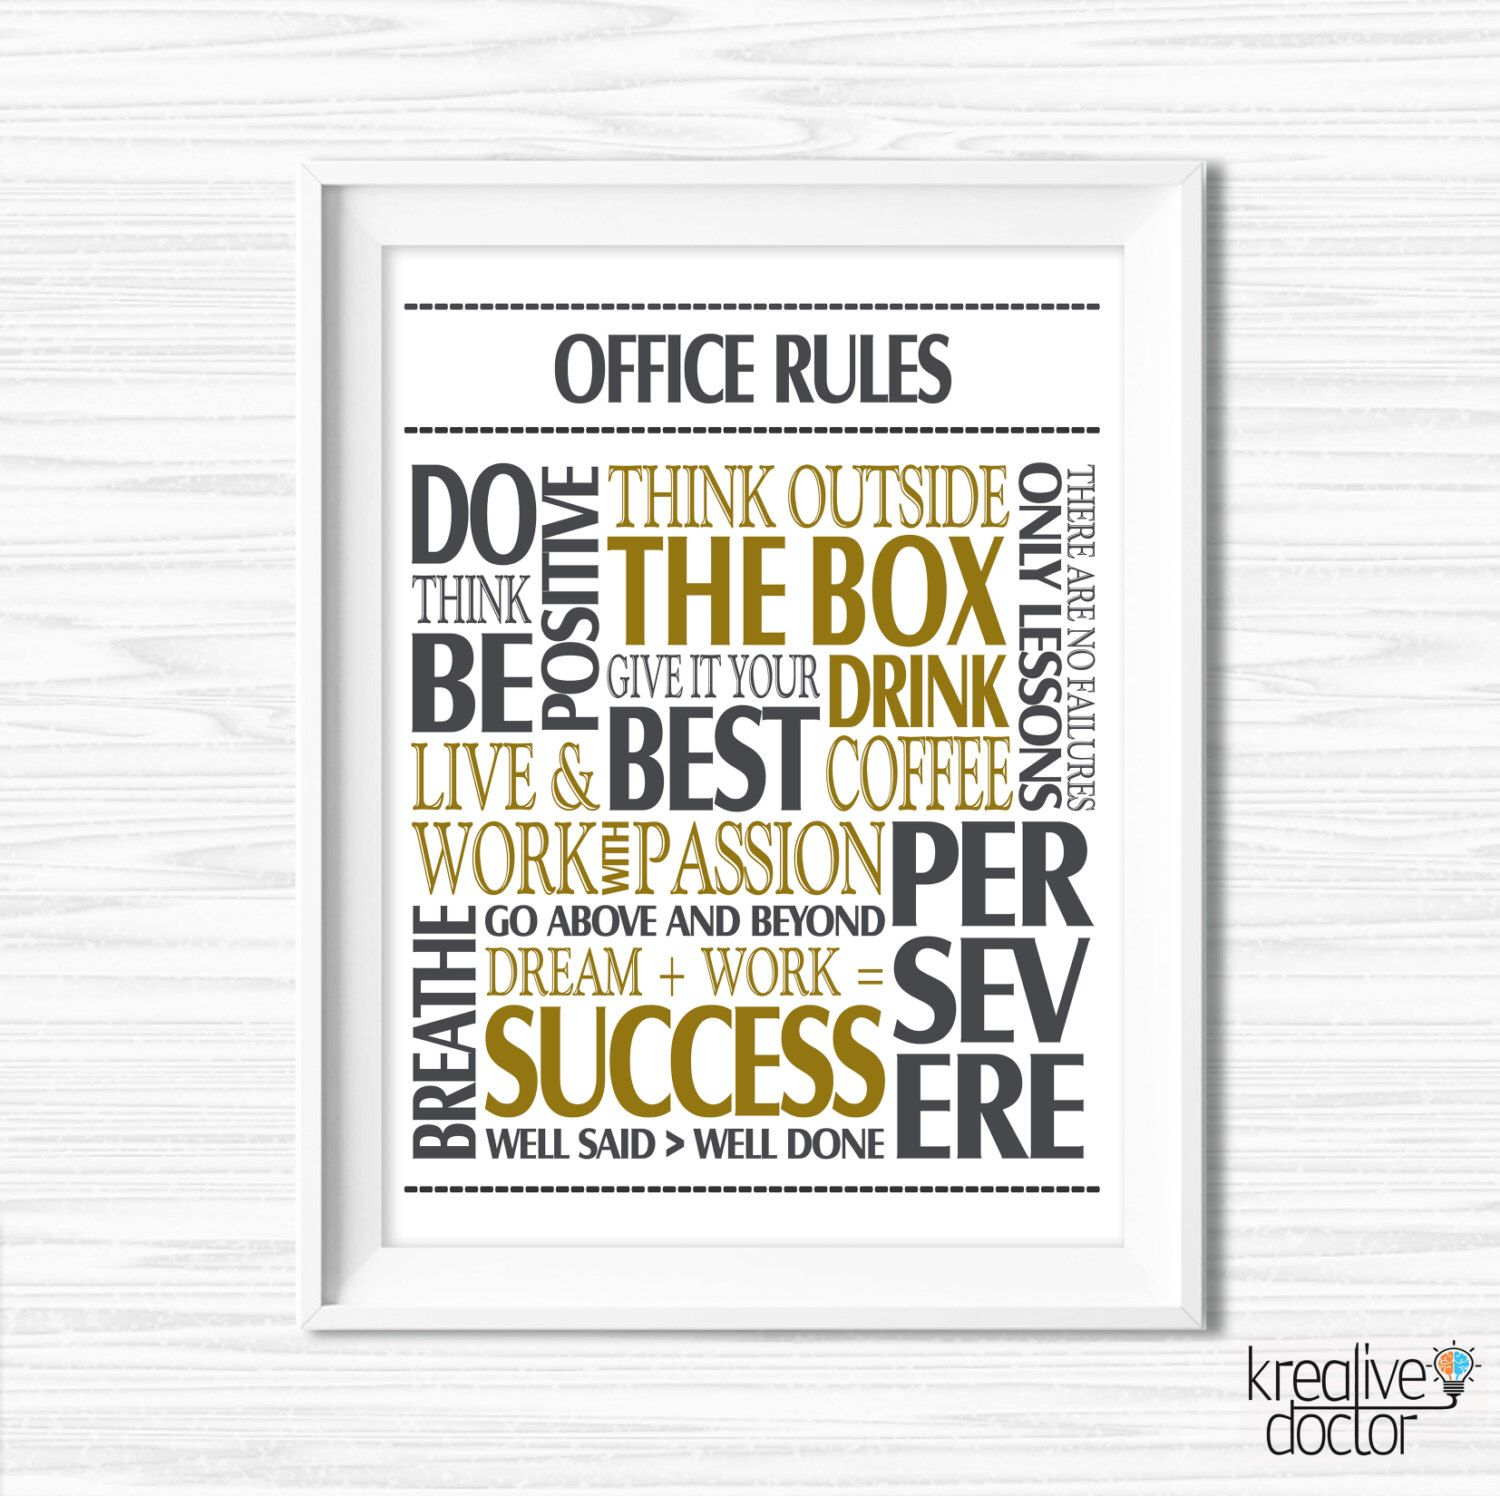 Office Rules Office Wall Art Inspirational Quotes For Etsy In 2021 Office Rules Office Quotes Office Wall Art